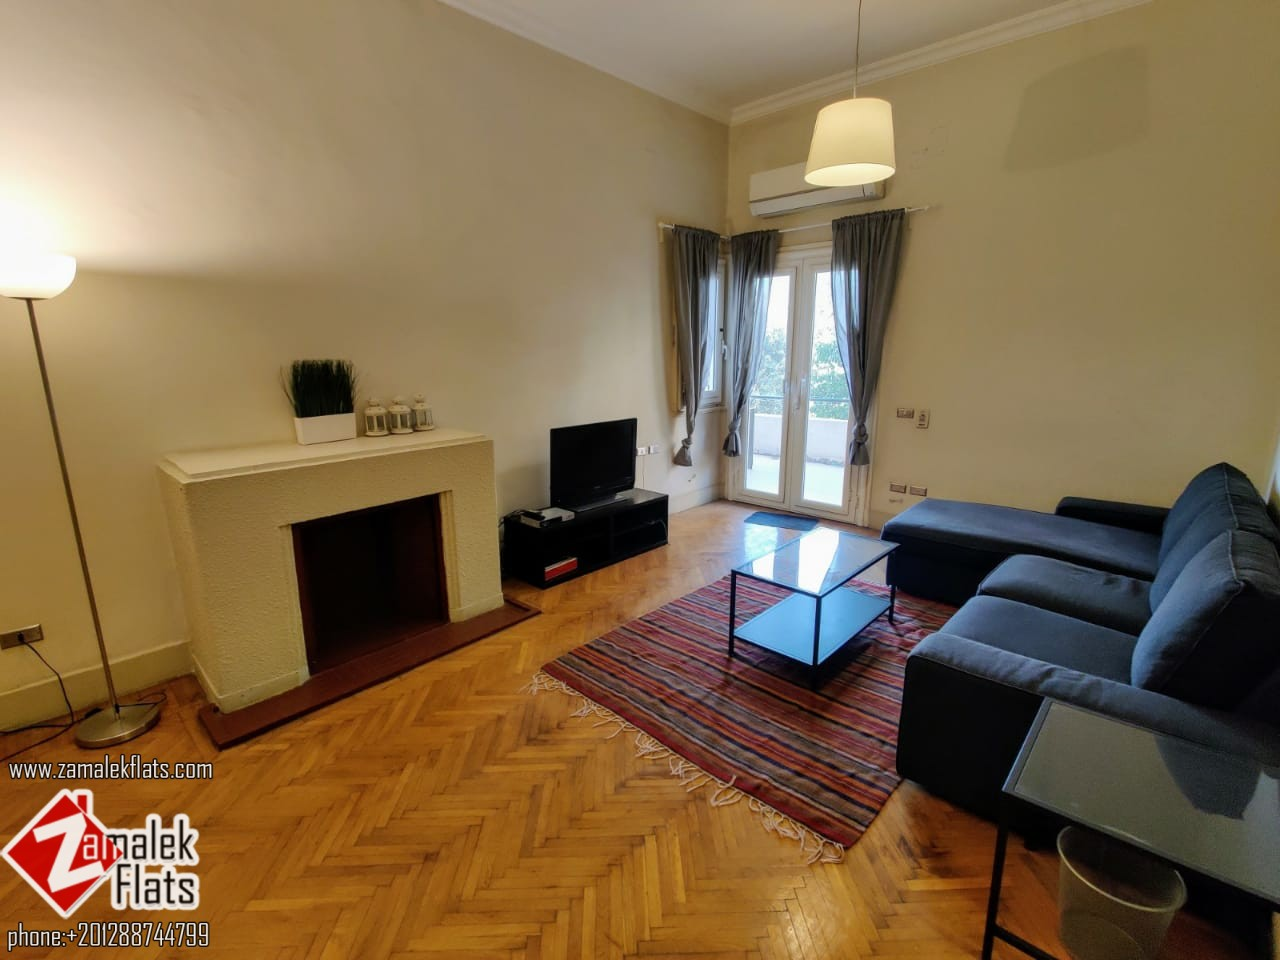 Nile River View Apartment for rent in Zamalek